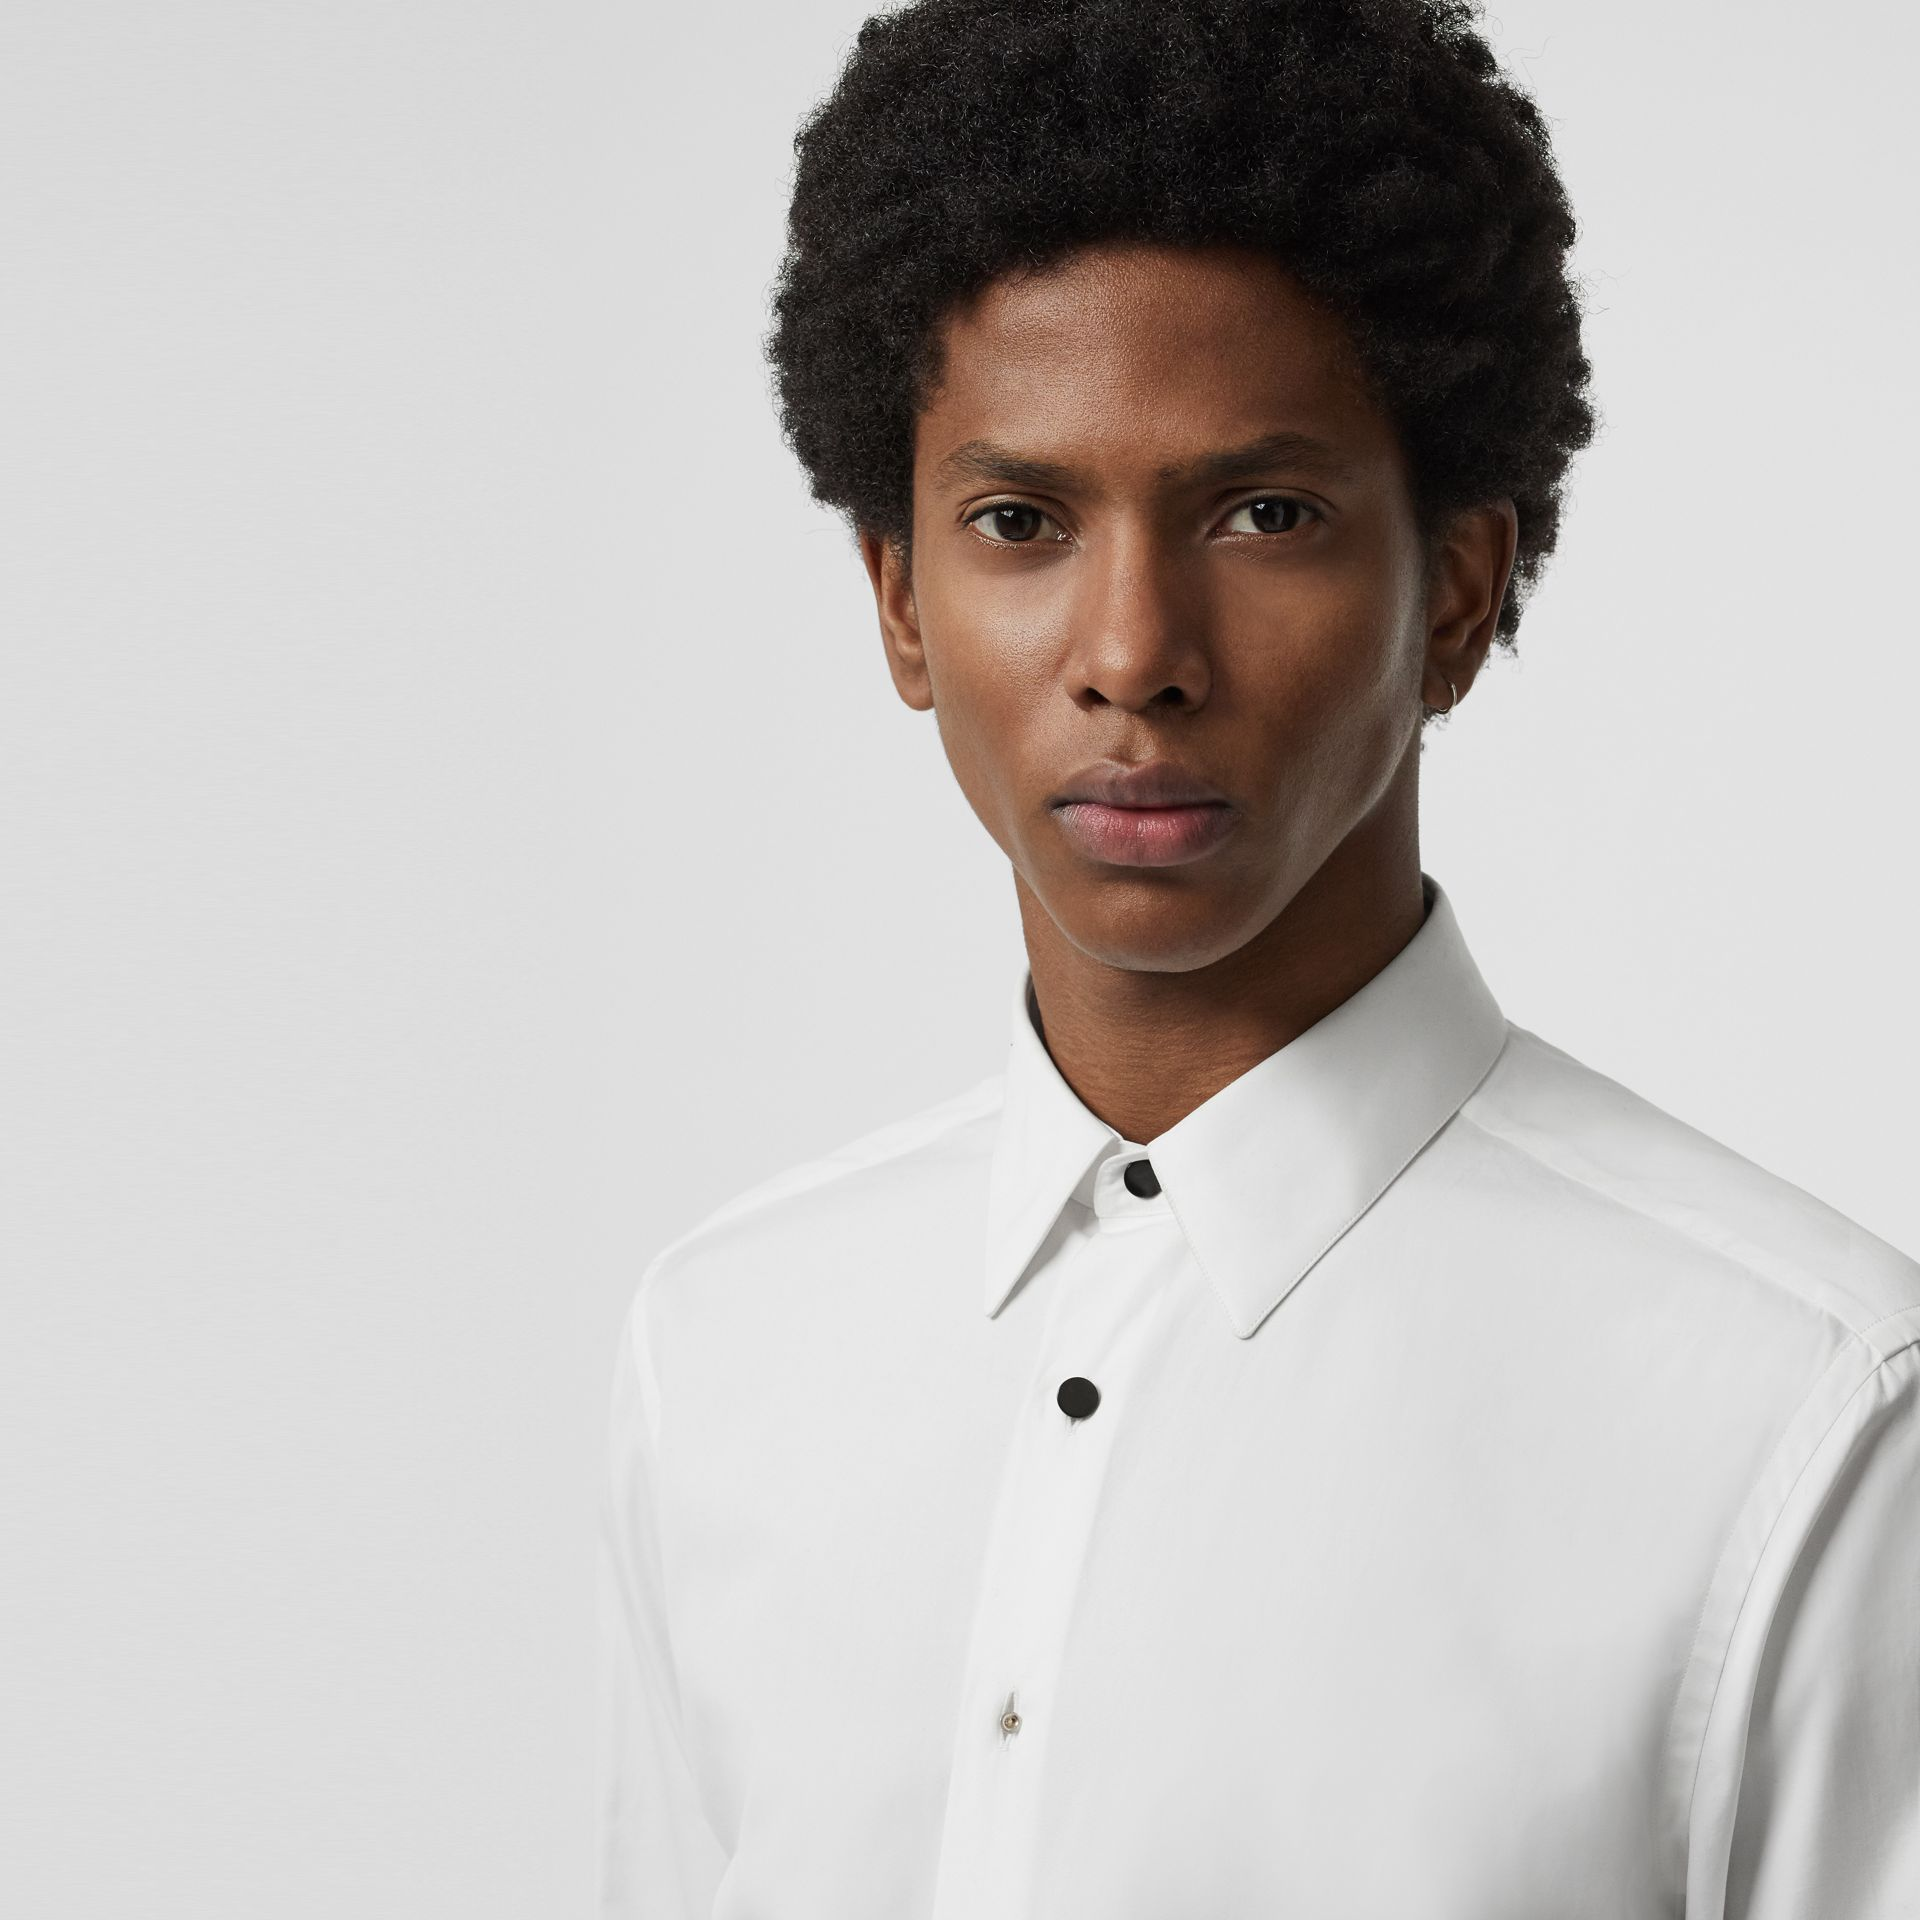 Classic Fit Cotton Poplin Dress Shirt in White - Men | Burberry - gallery image 1